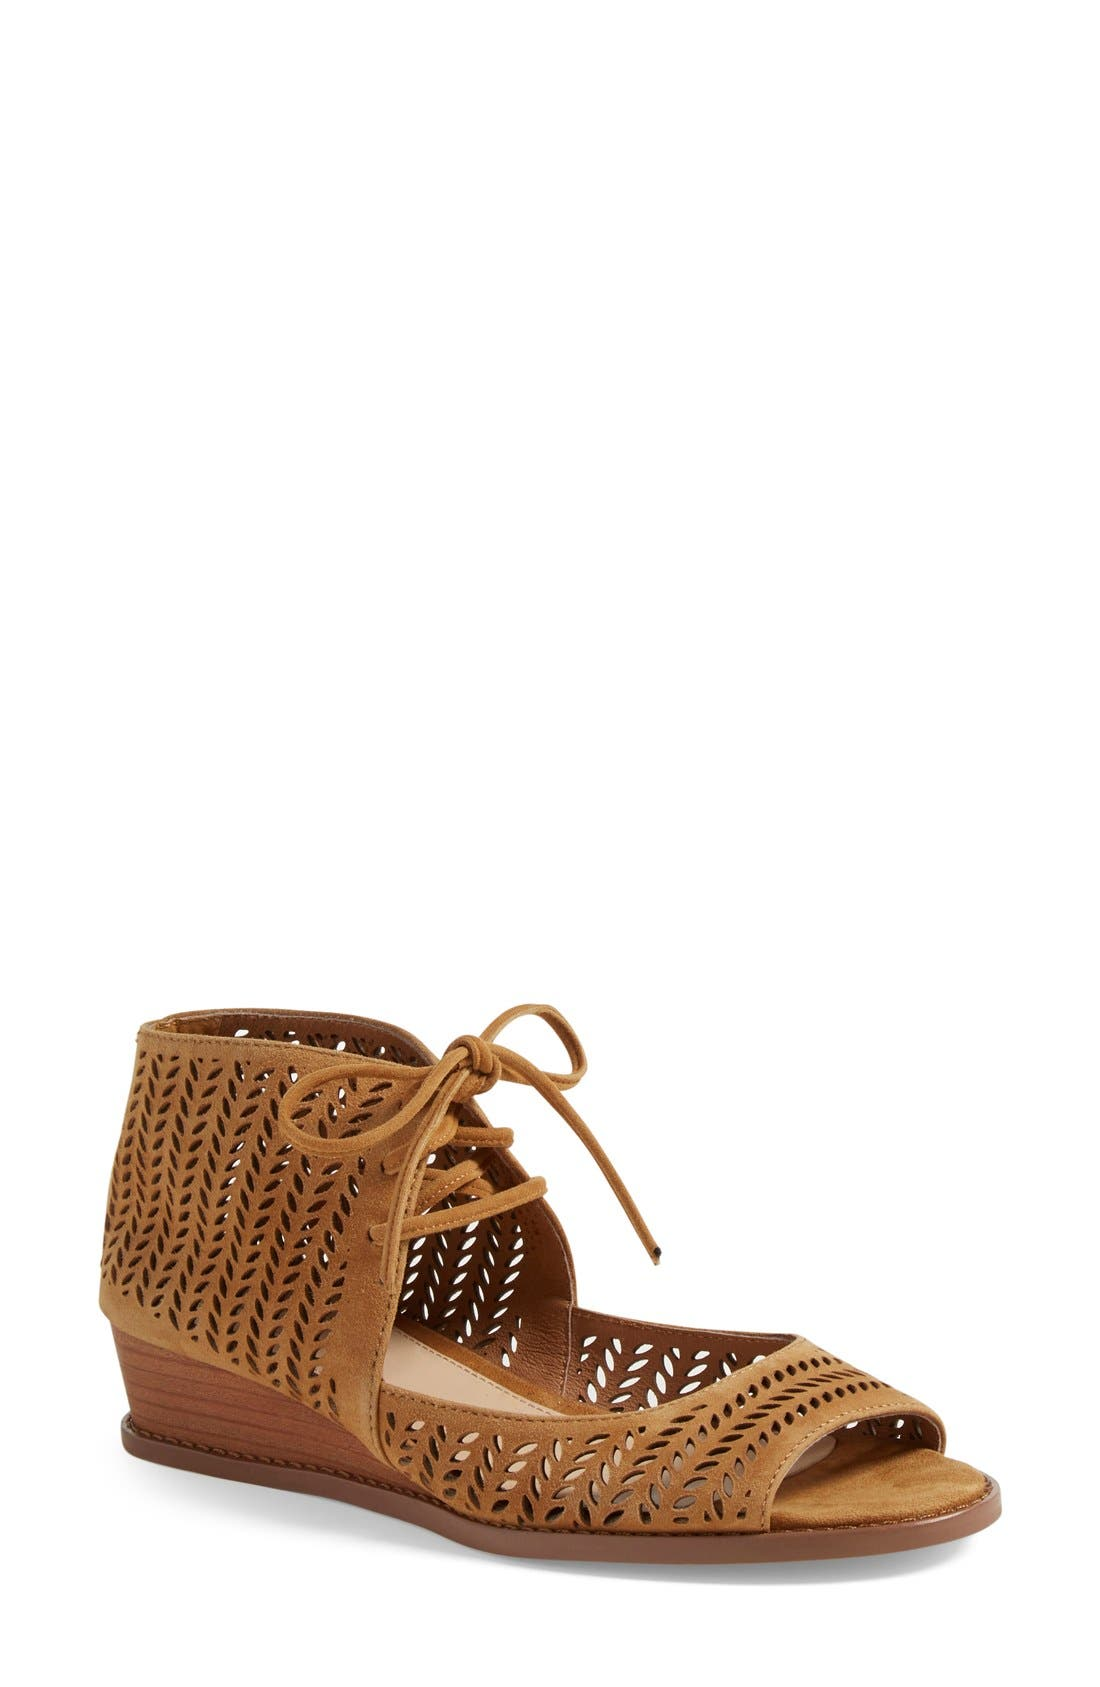 'Remme' Cutout Lace-Up Wedge Sandal,                             Main thumbnail 1, color,                             New Rust Suede